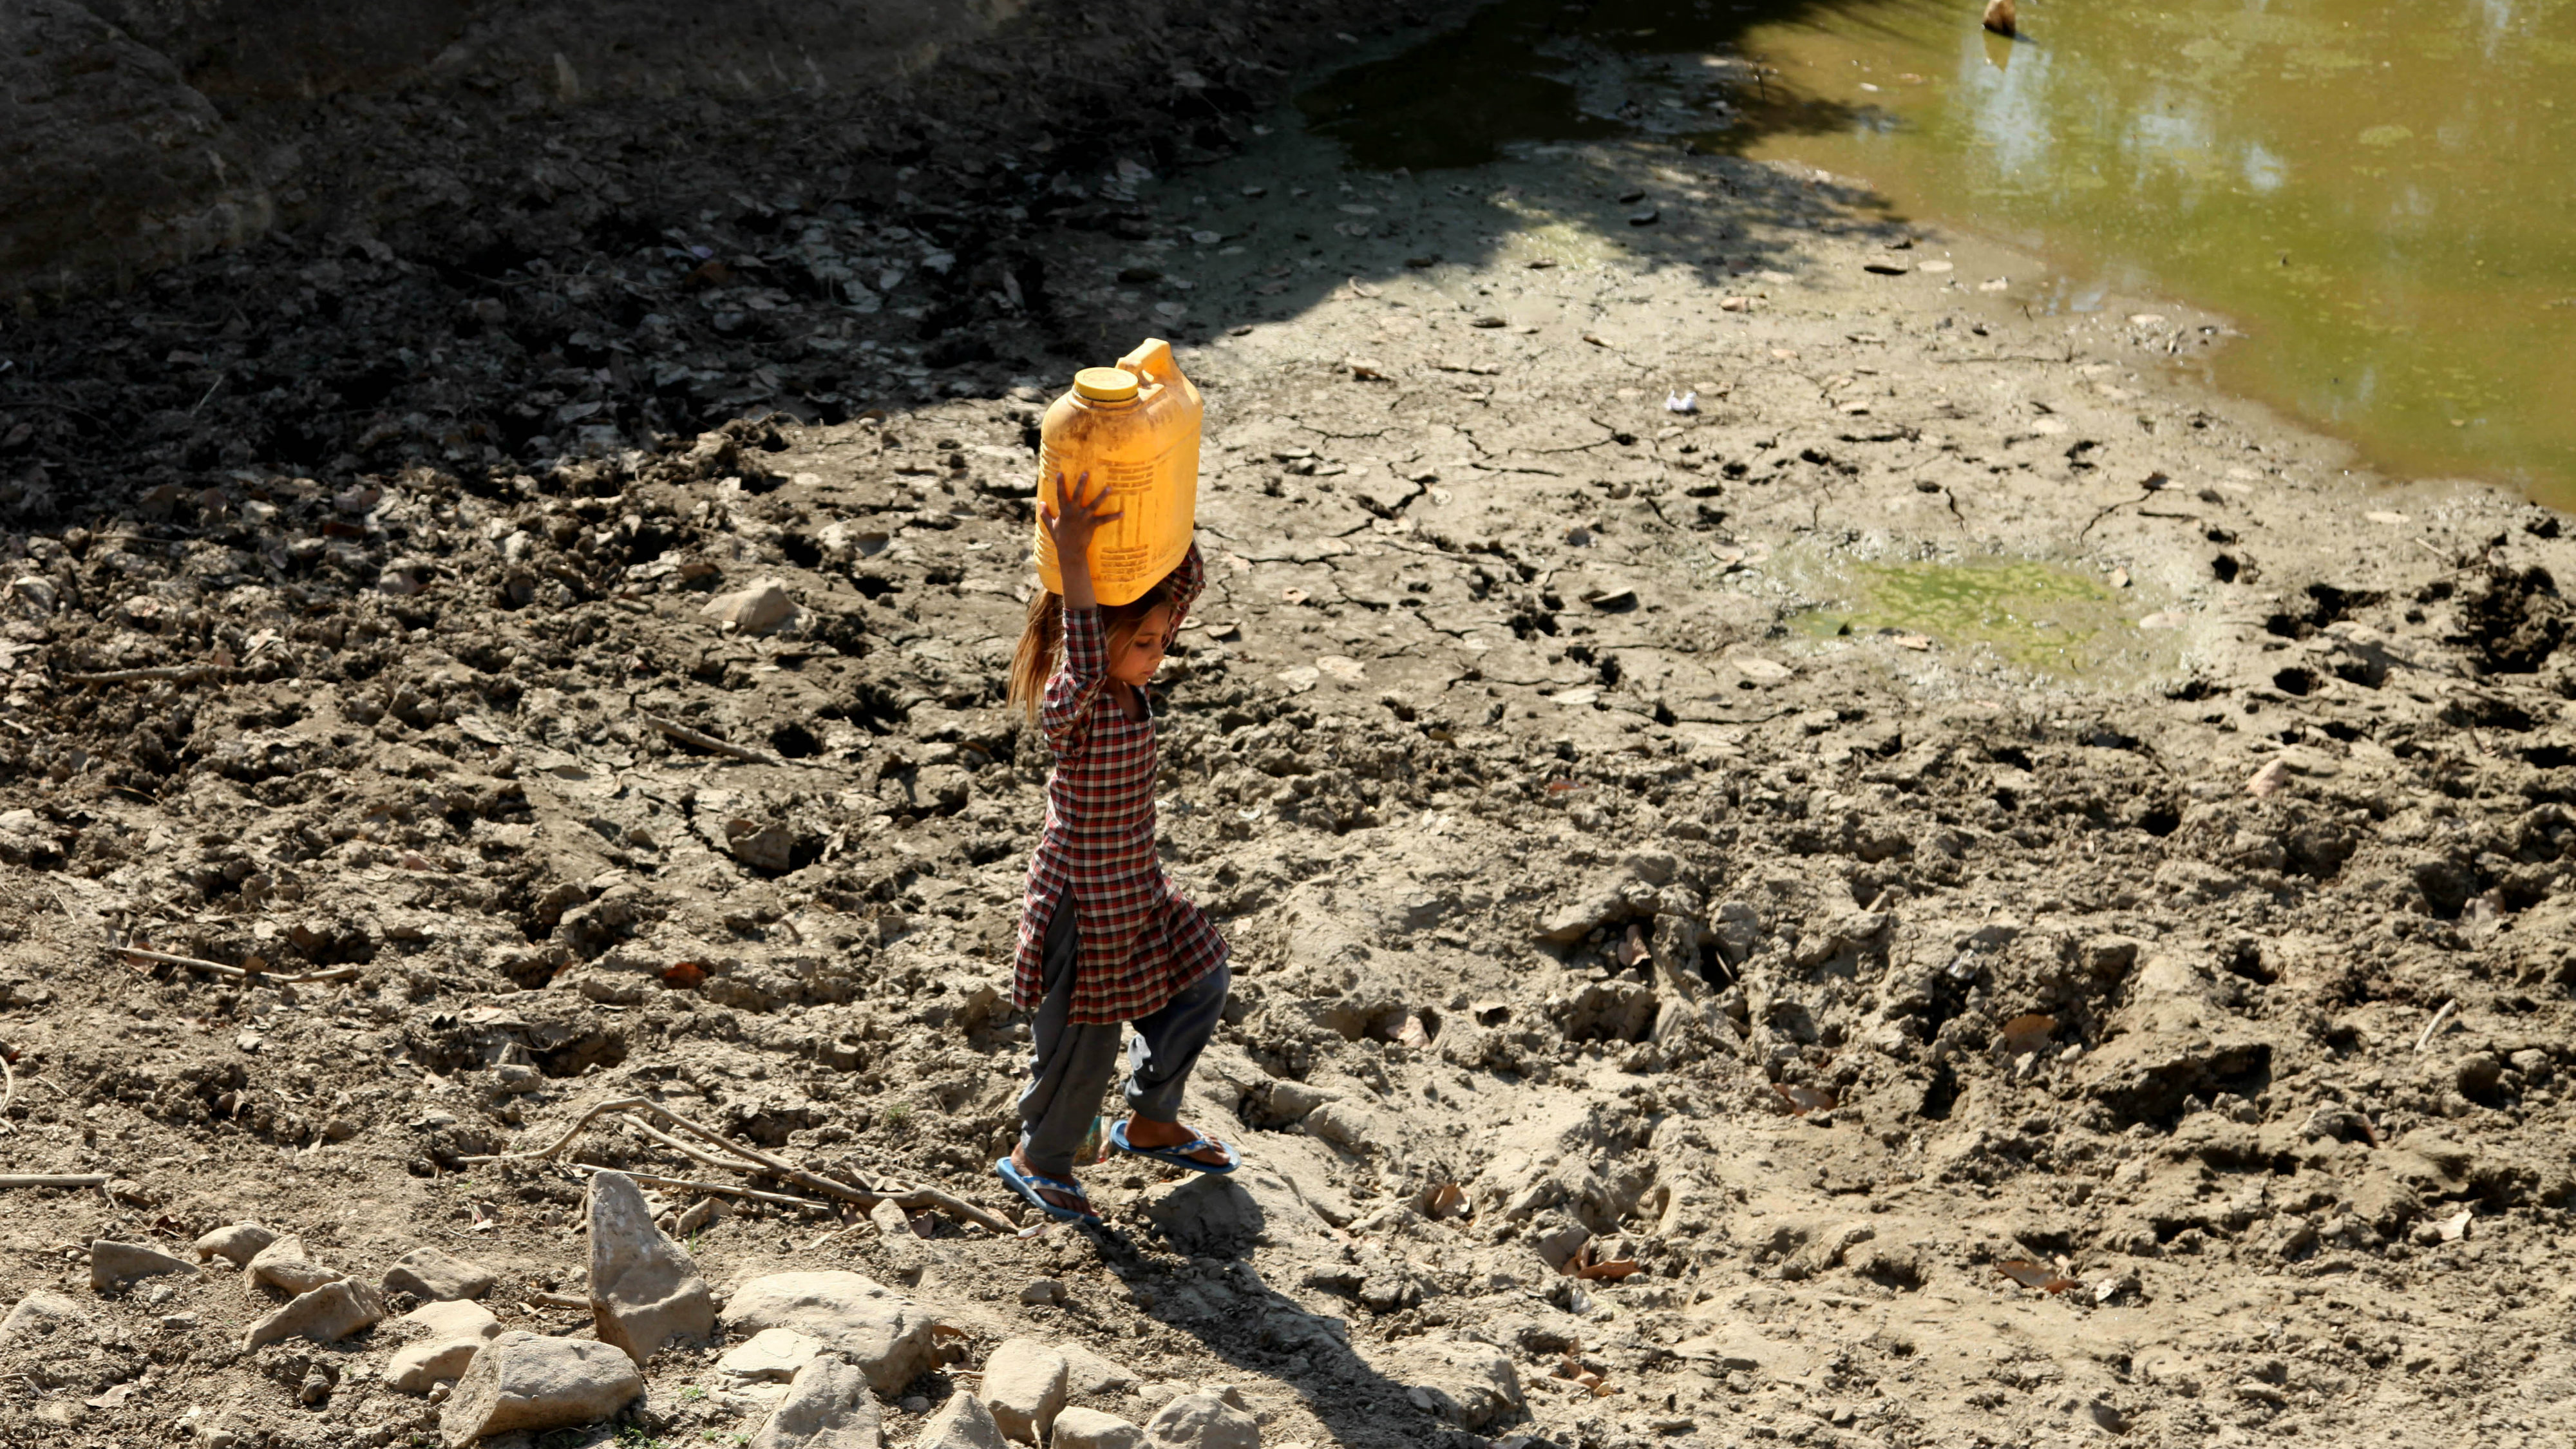 In this Friday, April 29, 2016, file photo, an Indian girl carries drinking water in a plastic container on her head as she walk back to her village after collecting it from an almost dried up well in Samba district, some 40 kilometres (25 miles) from Jammu, India. Much of India is reeling under a weeks long heat wave and severe drought conditions that have decimated crops, killed livestock and left at least 330 million Indians without enough water for their daily needs.